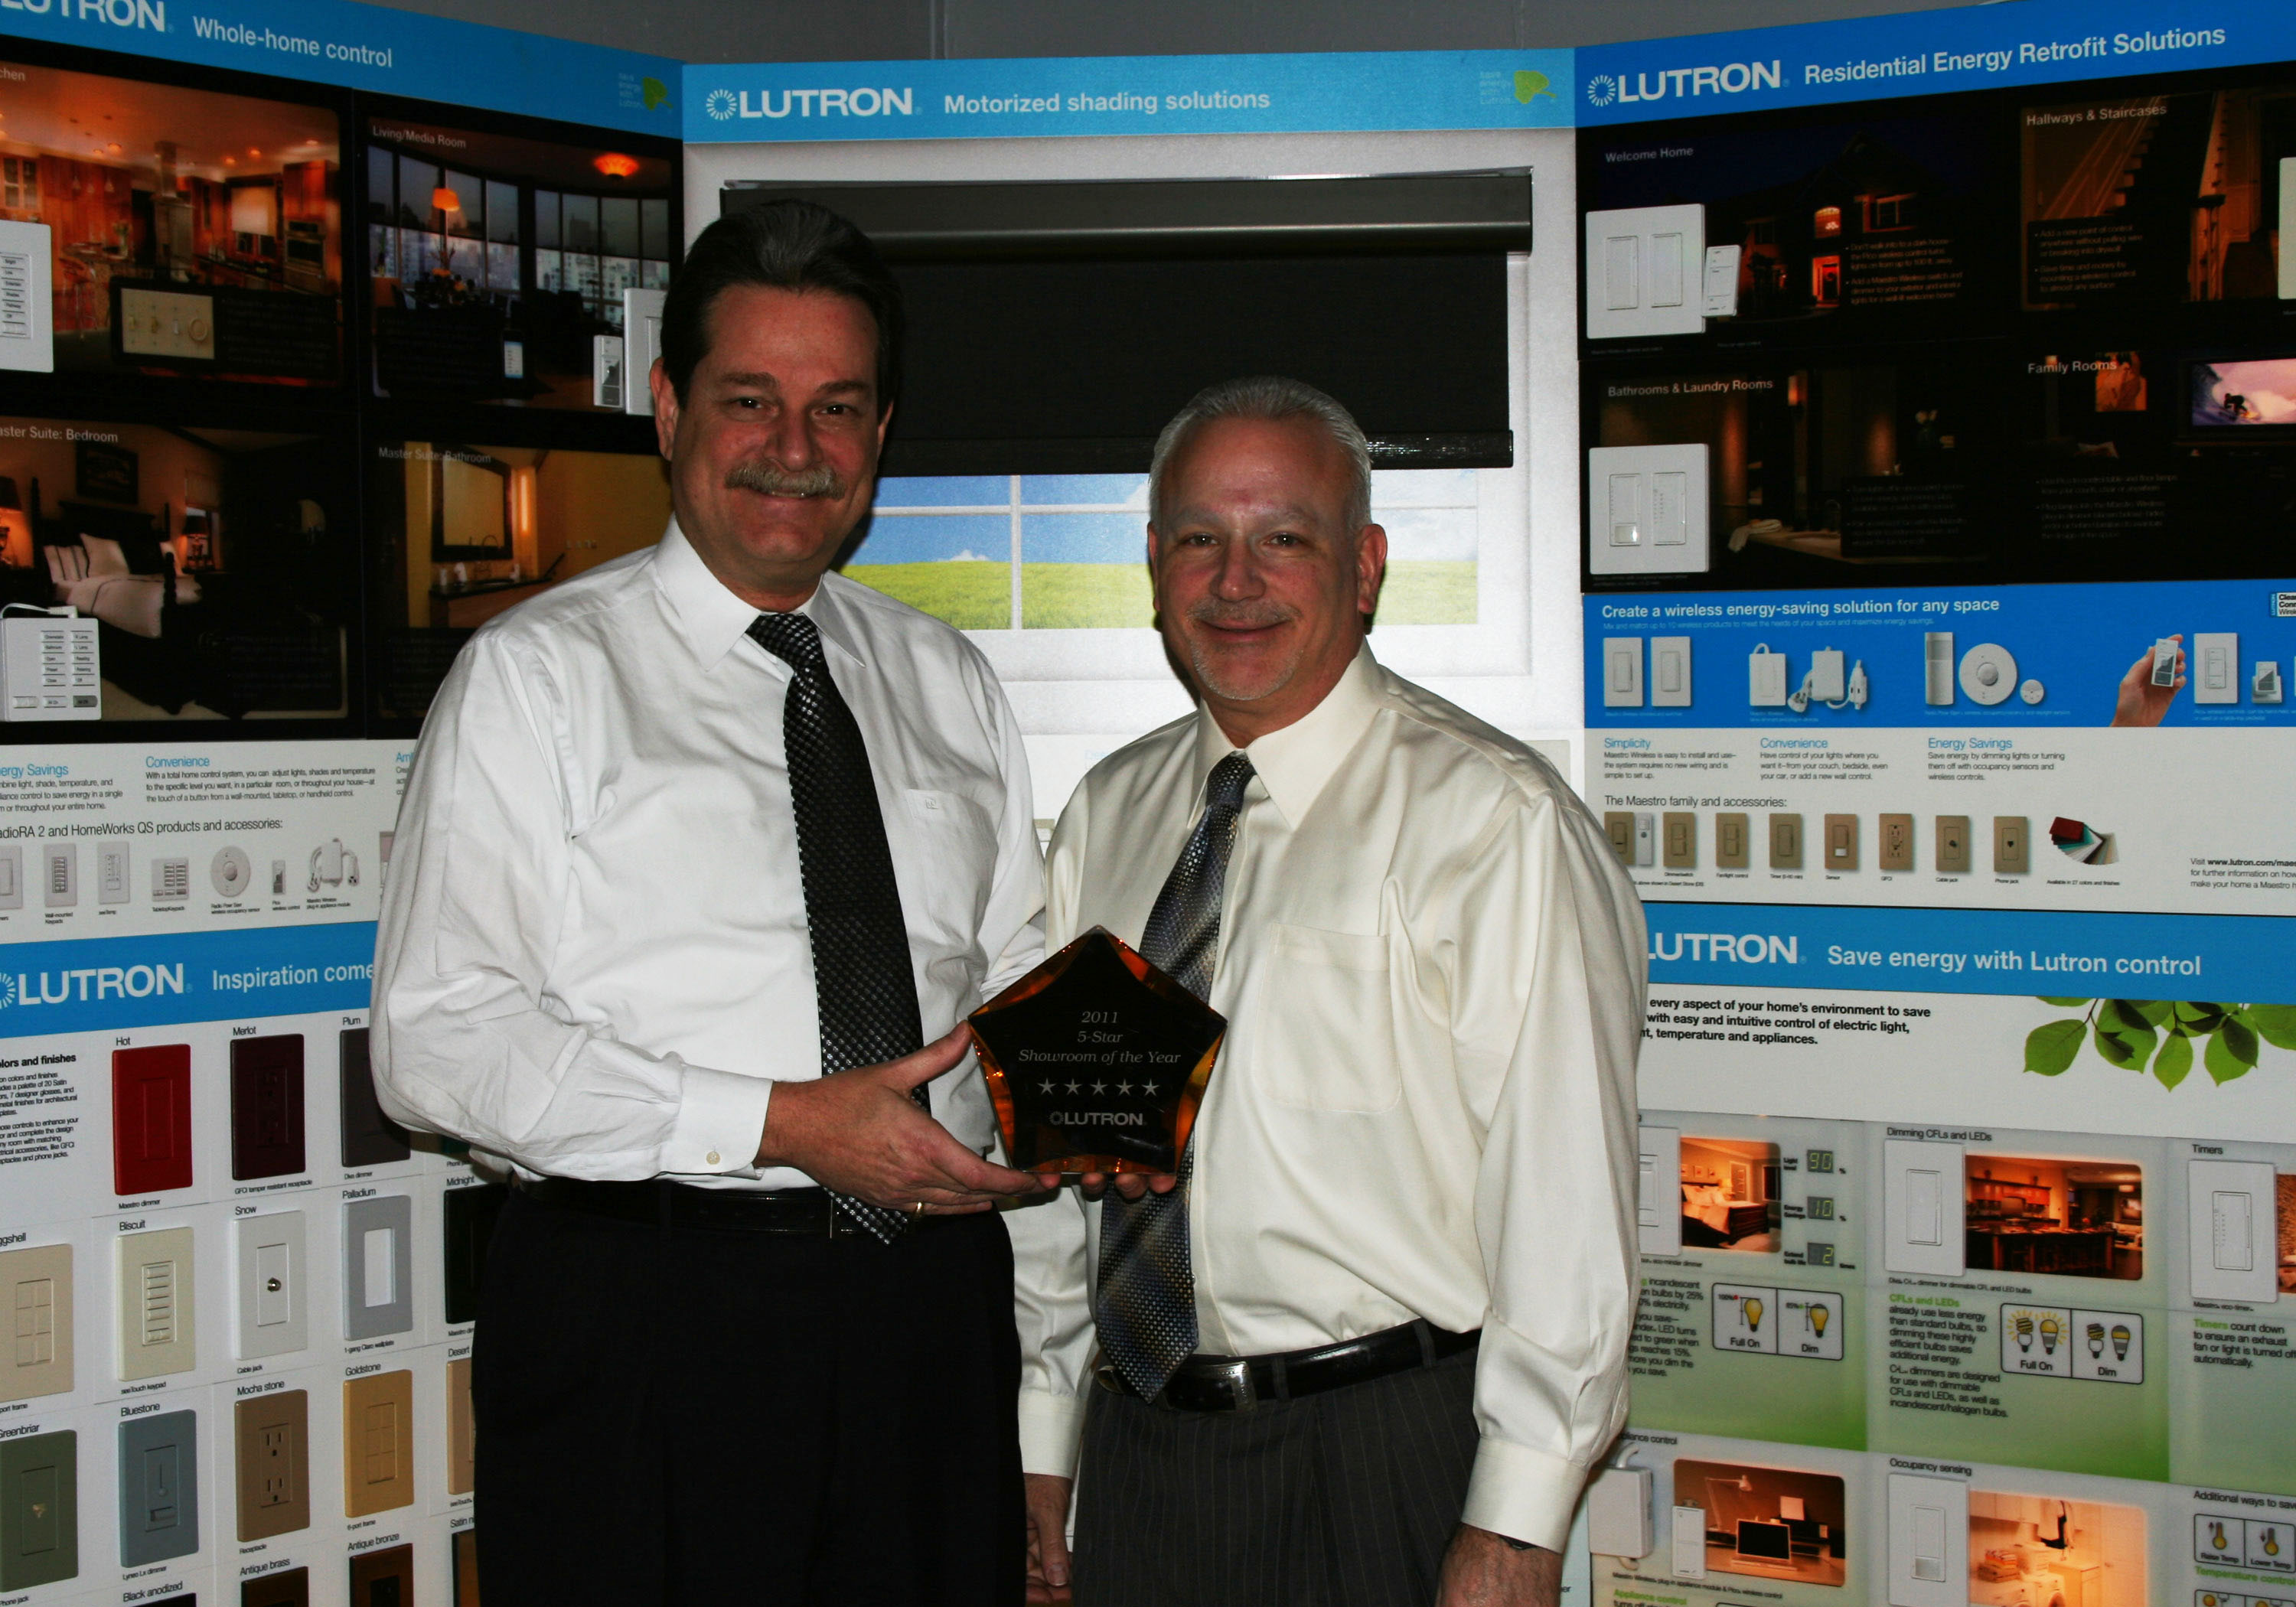 Ct Lighting Receives Prestigious Award For